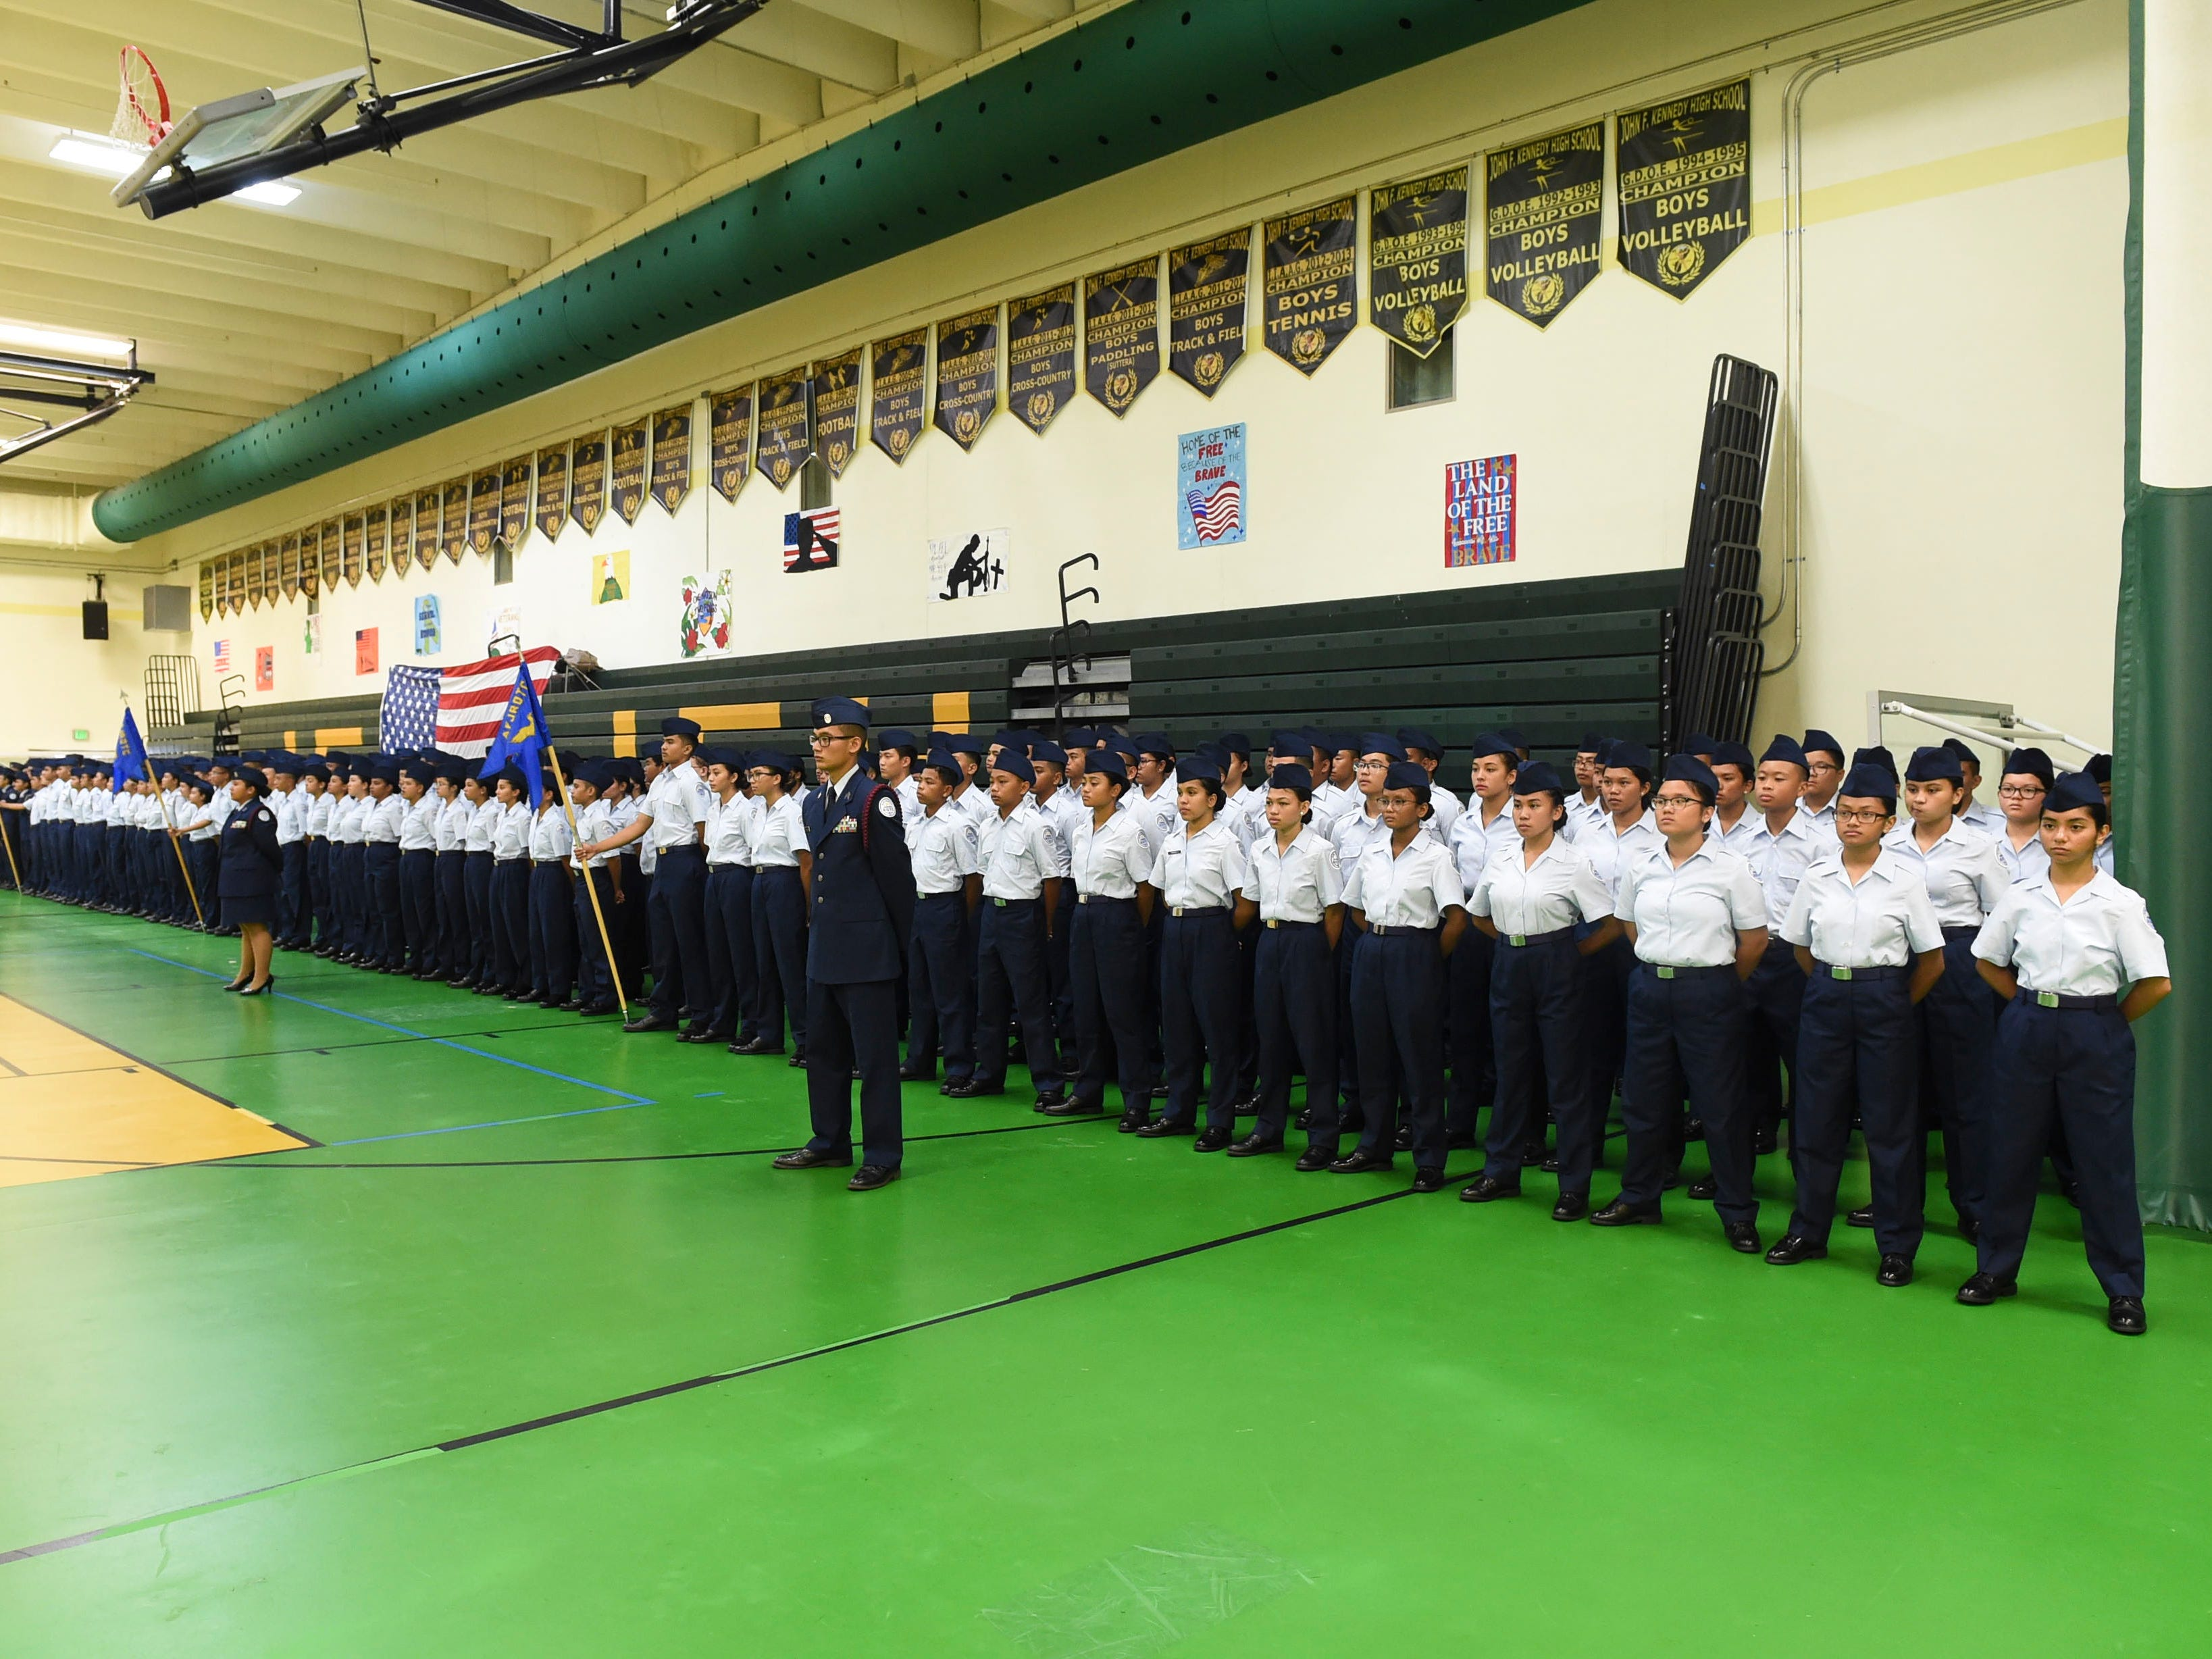 Members of the John F. Kennedy High School Air Force Junior ROTC team during the JFK High School Veterans Recognition Ceremony, Nov. 9, 2018.